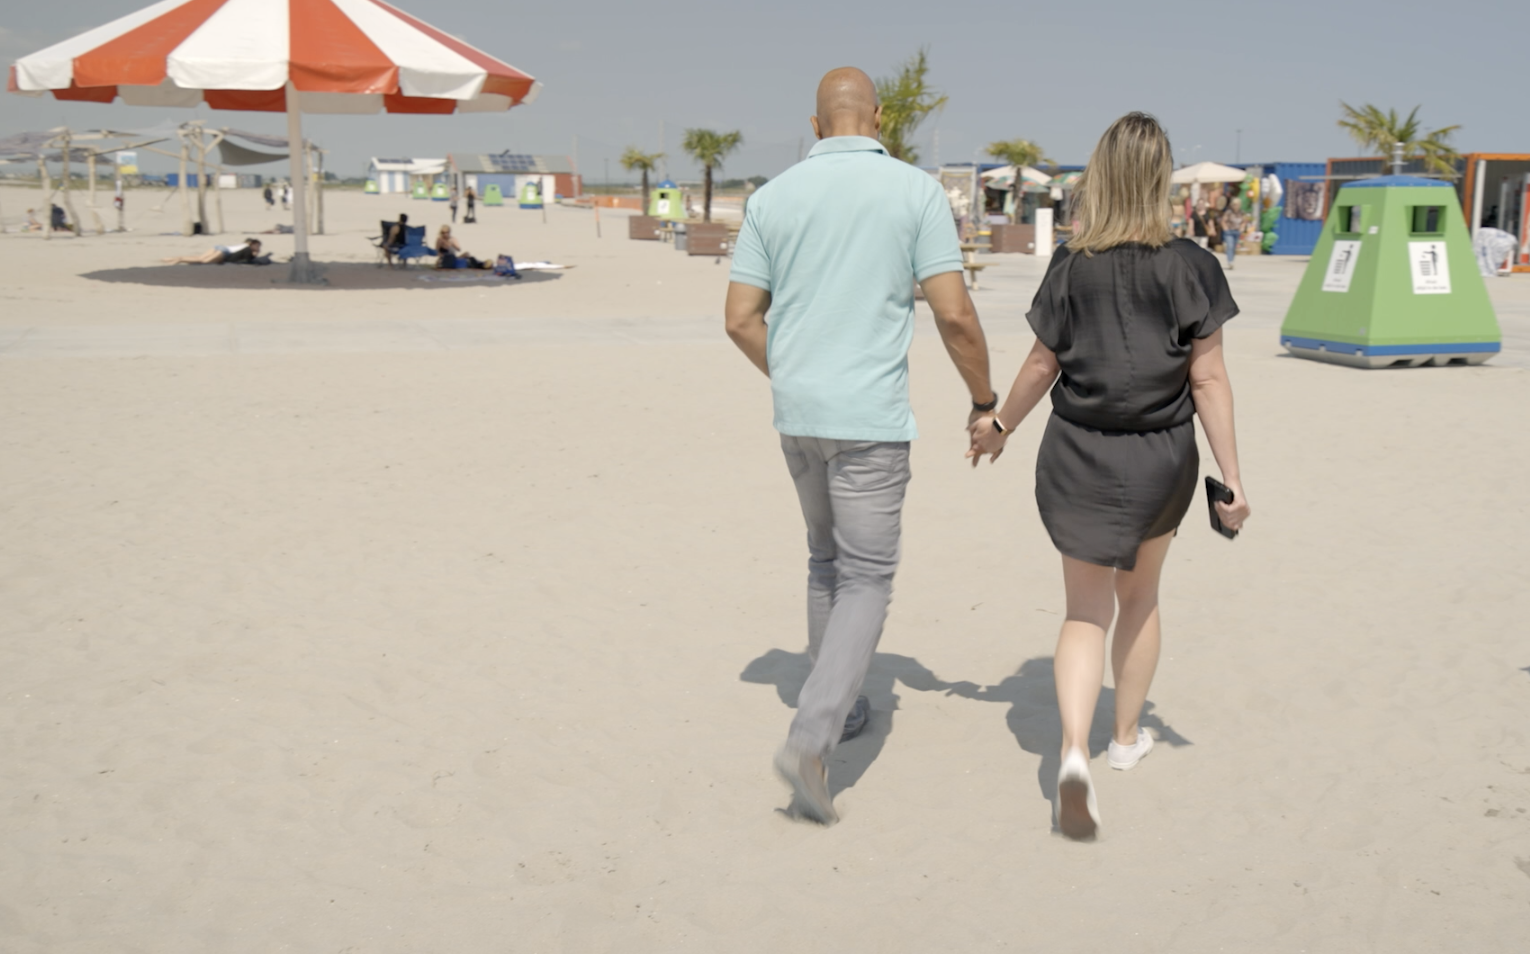 Andres Ramirez Walking on the Beach with his Girlfriend